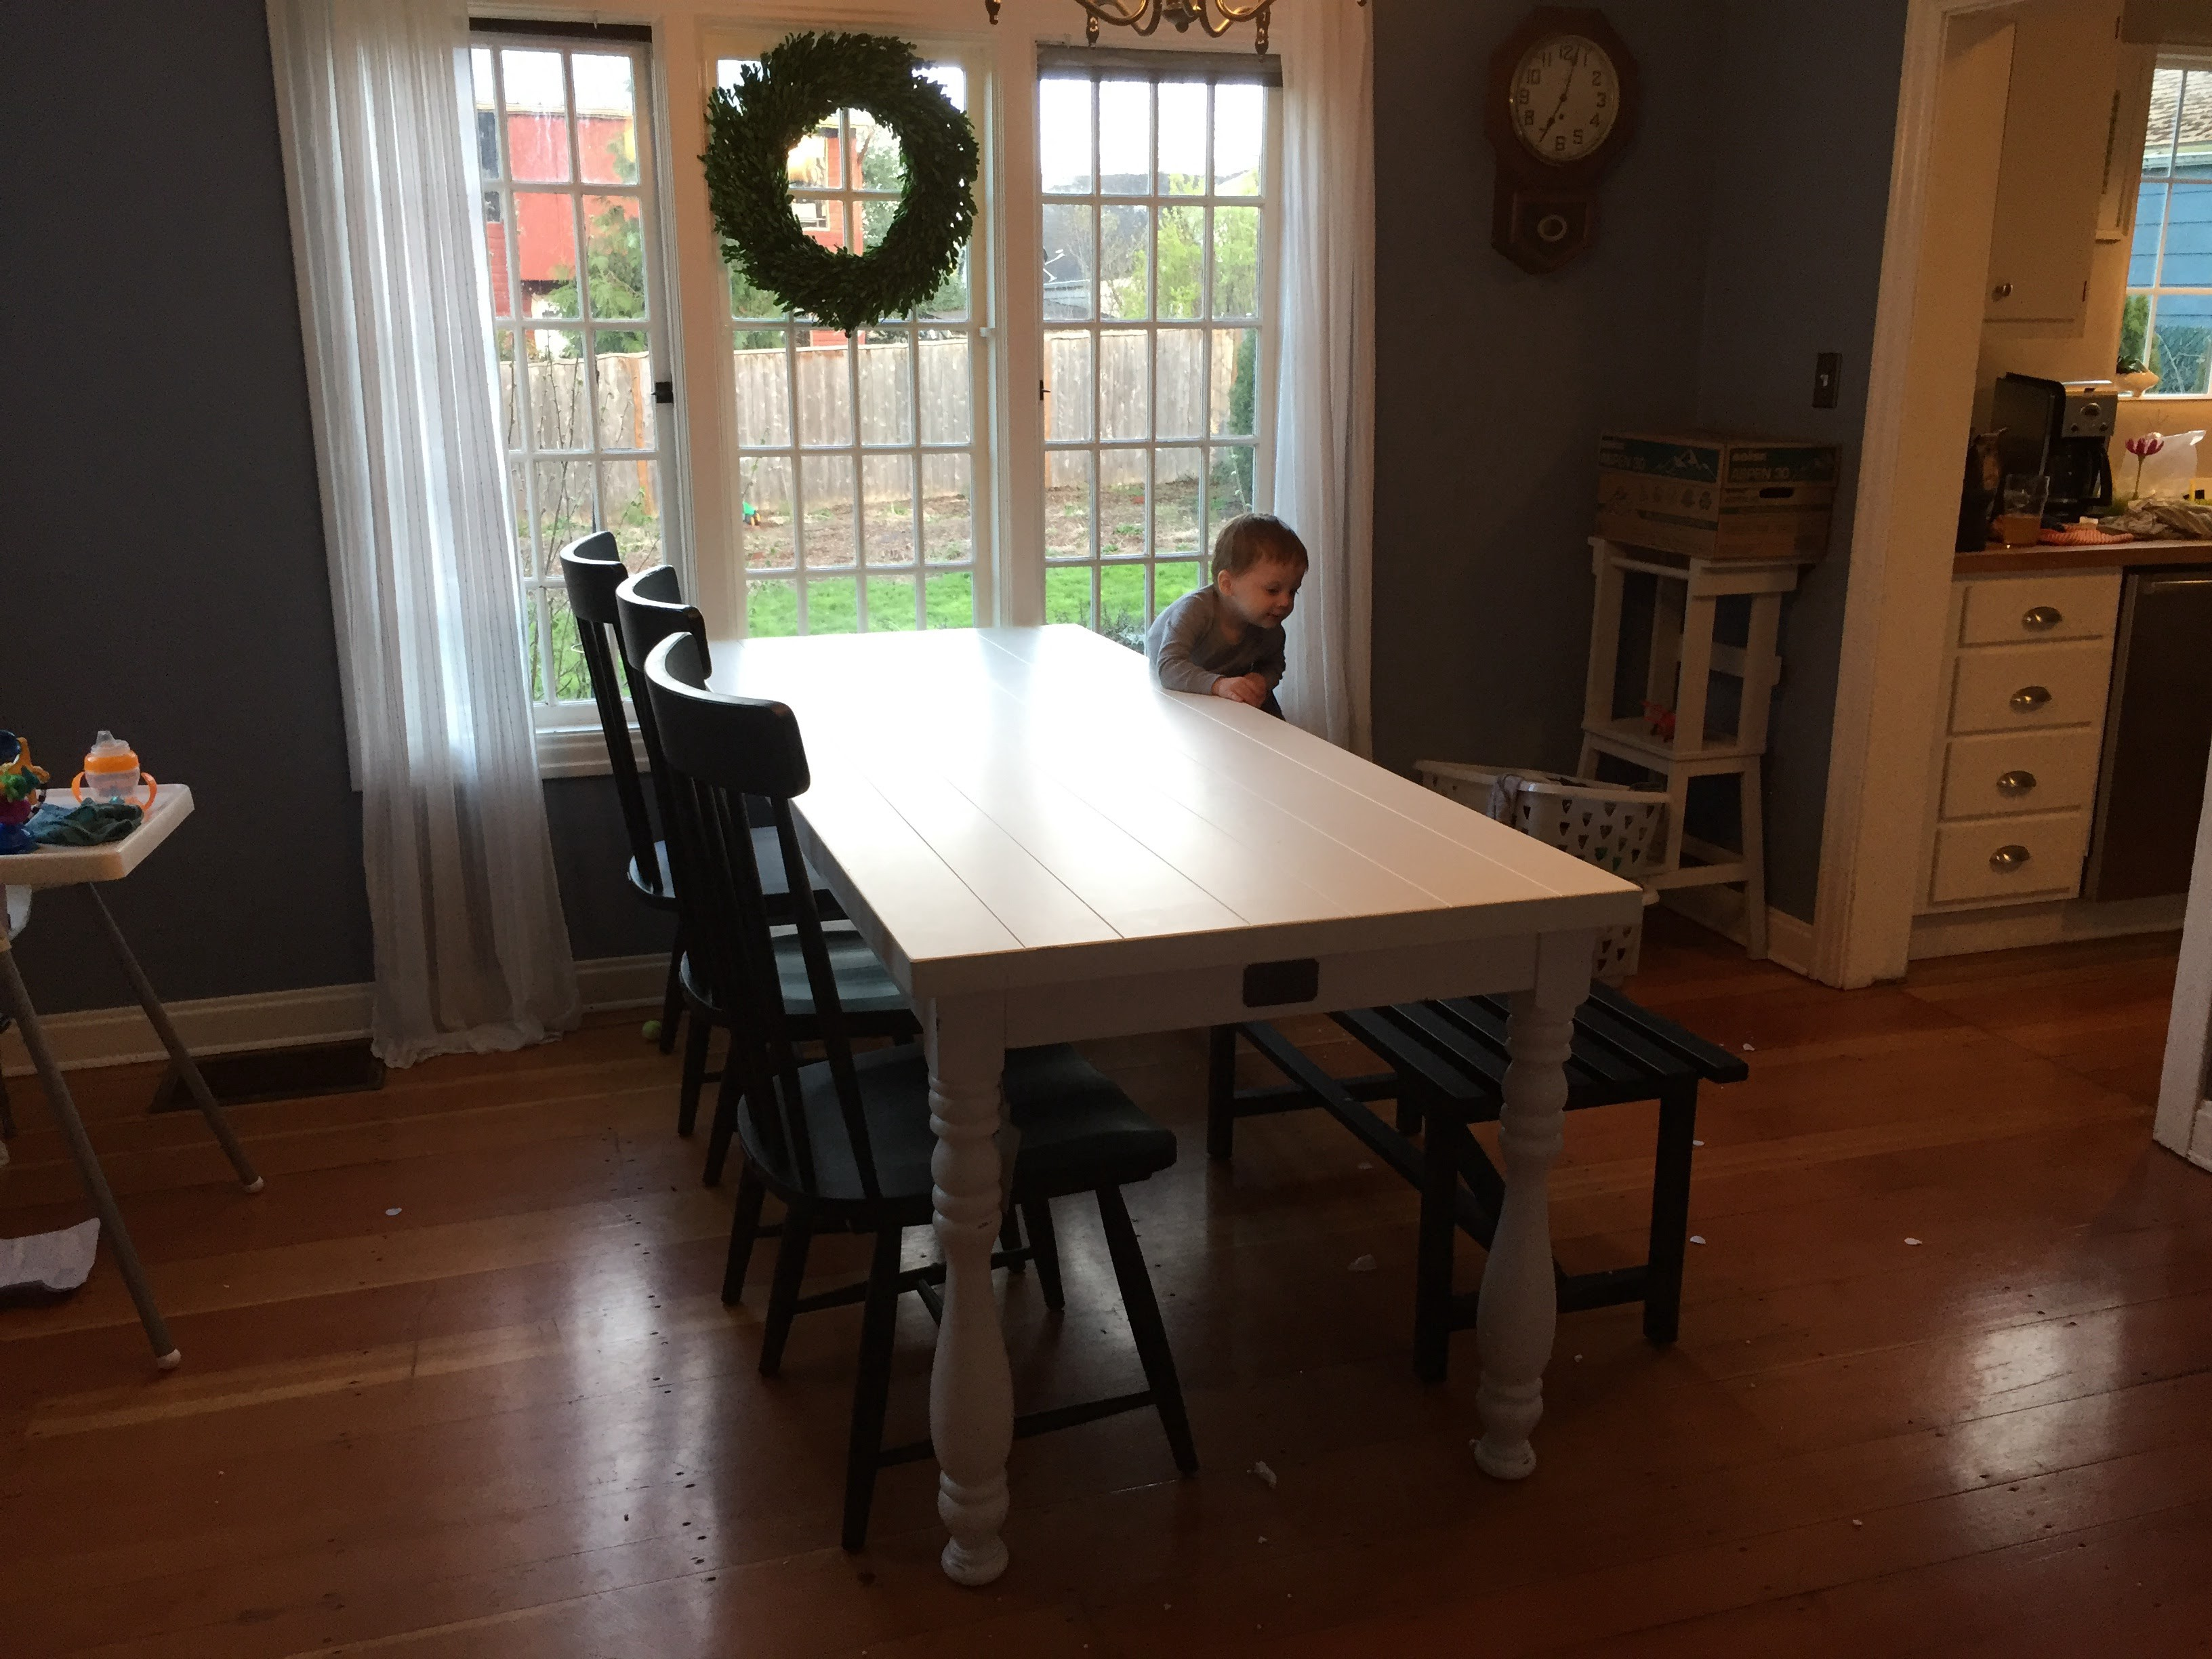 I Am Writing This Review In Secret Because My Wife Is Super Excited About Our New Farmhouse Table And Chairs Don T Want To Rain On Her Parade